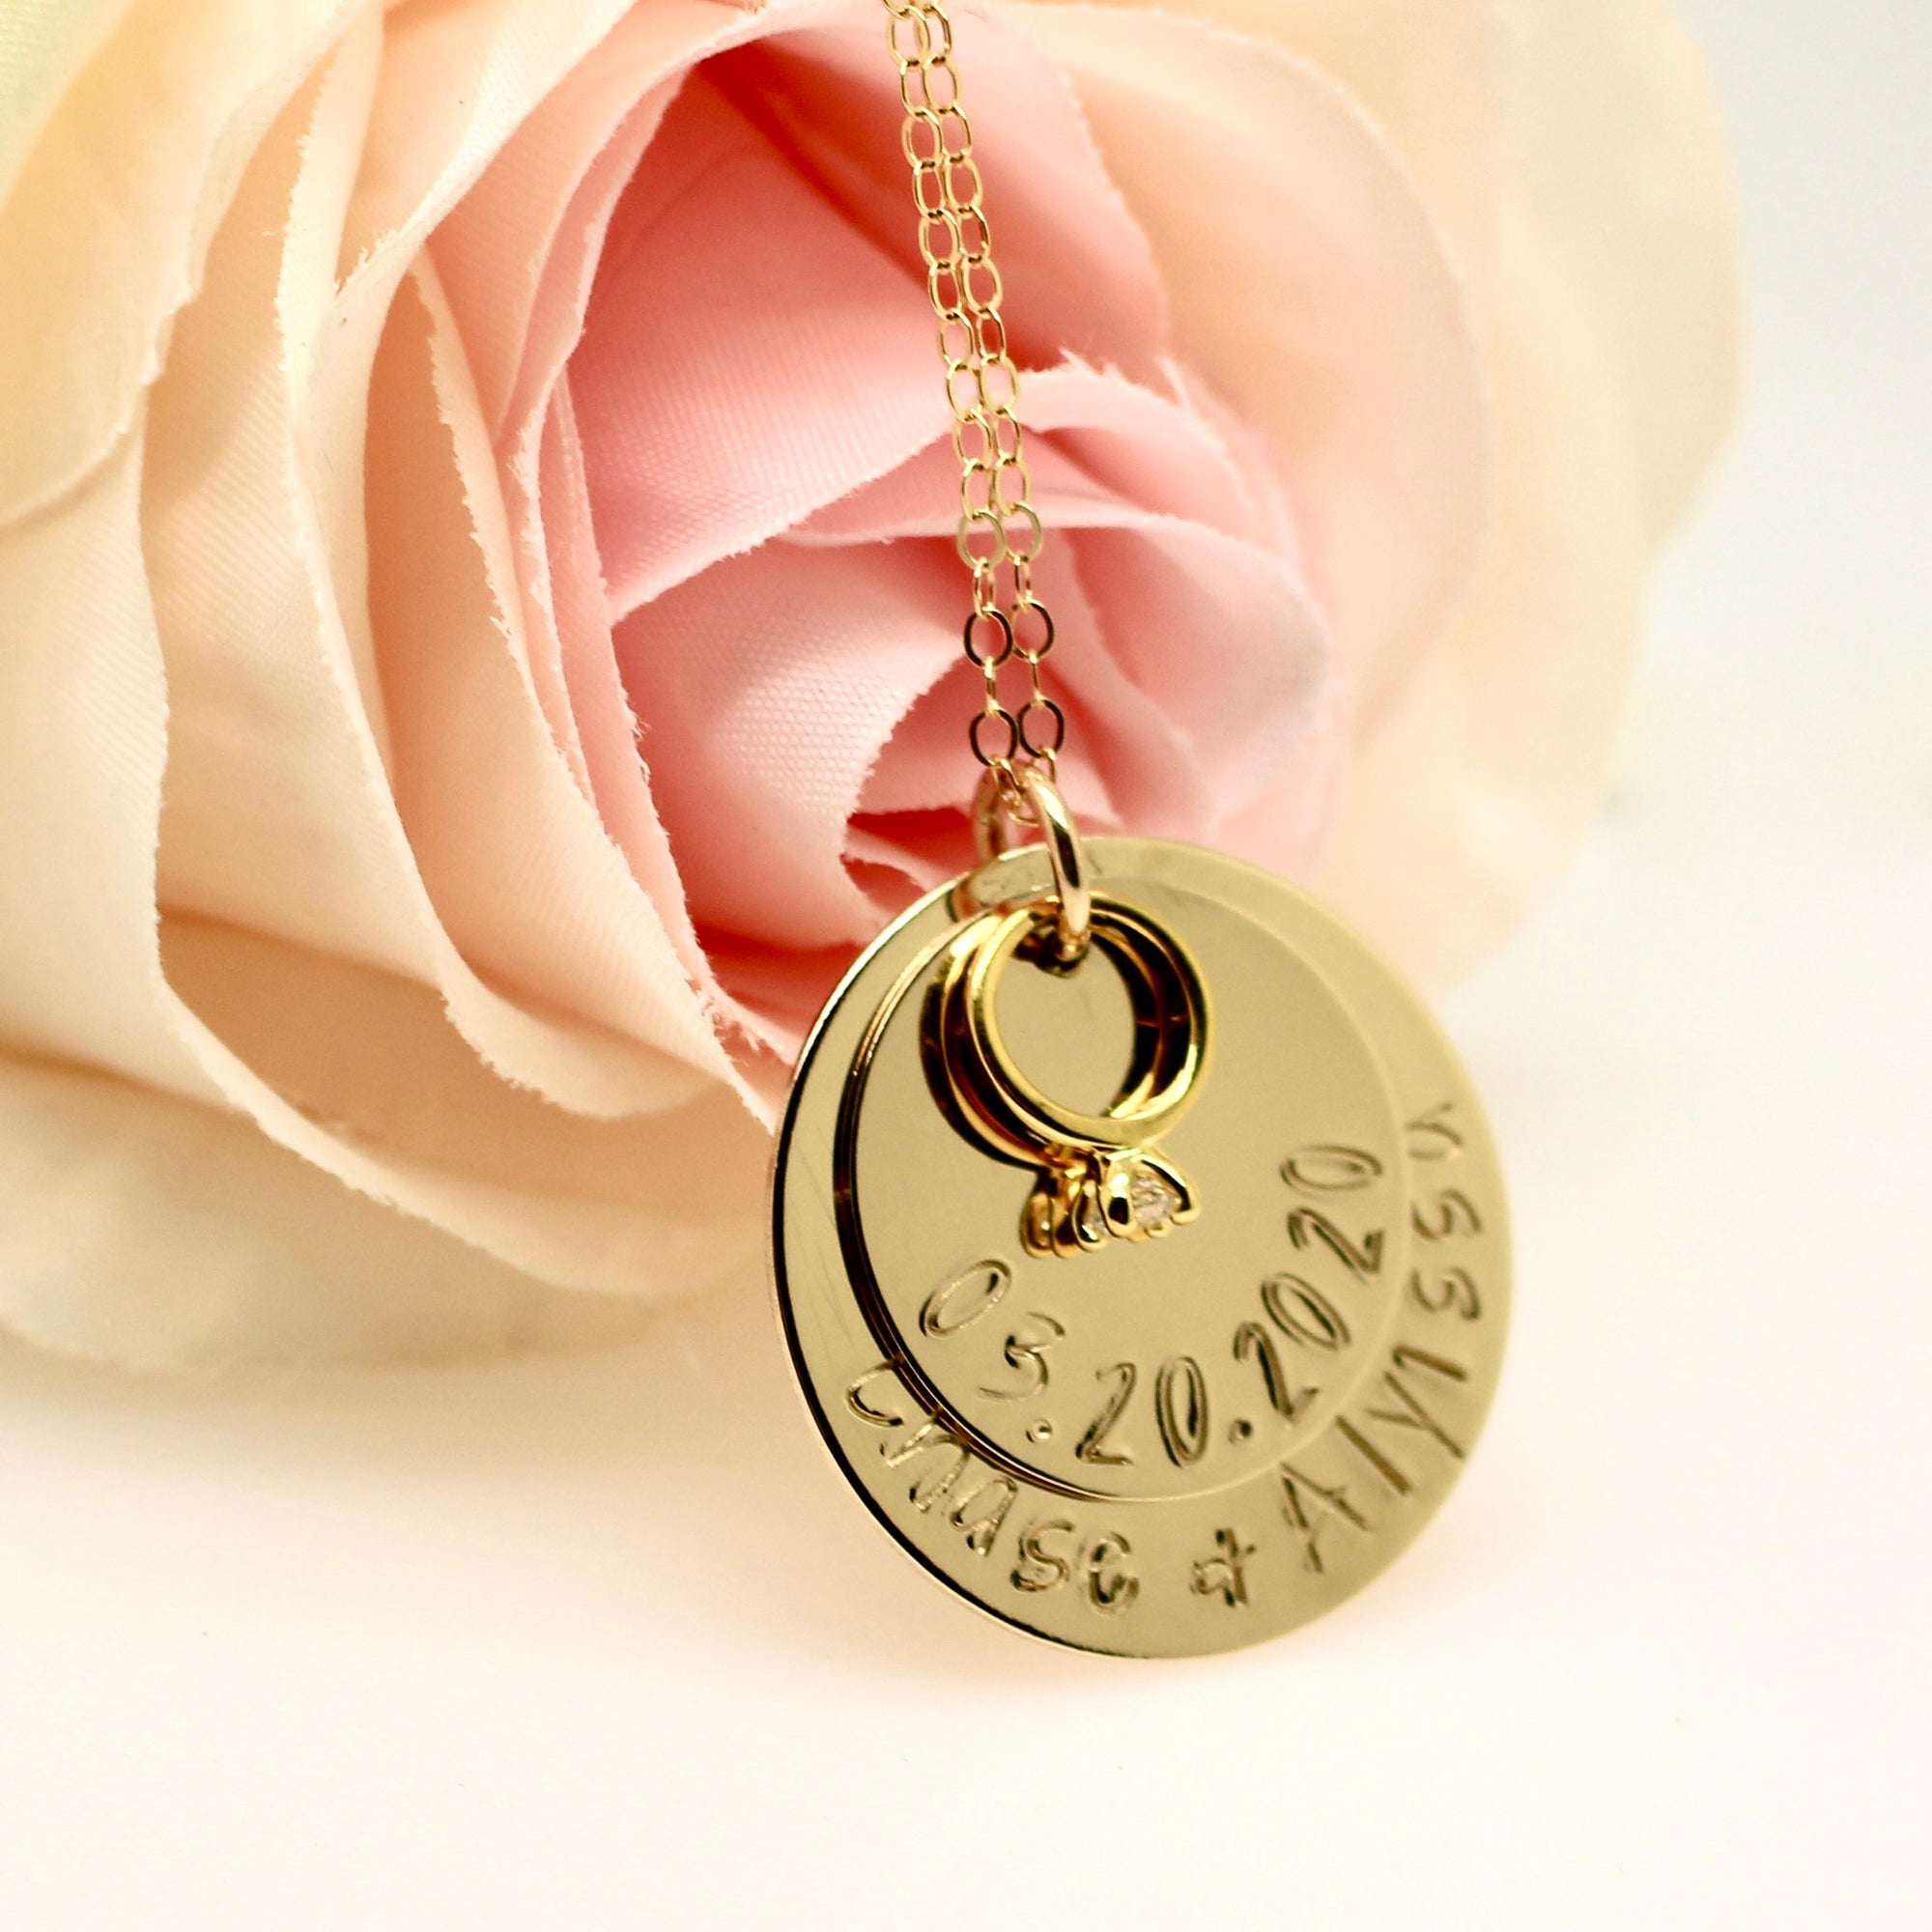 Wedding Ring Necklace - Gold Filled - Love It Personalized